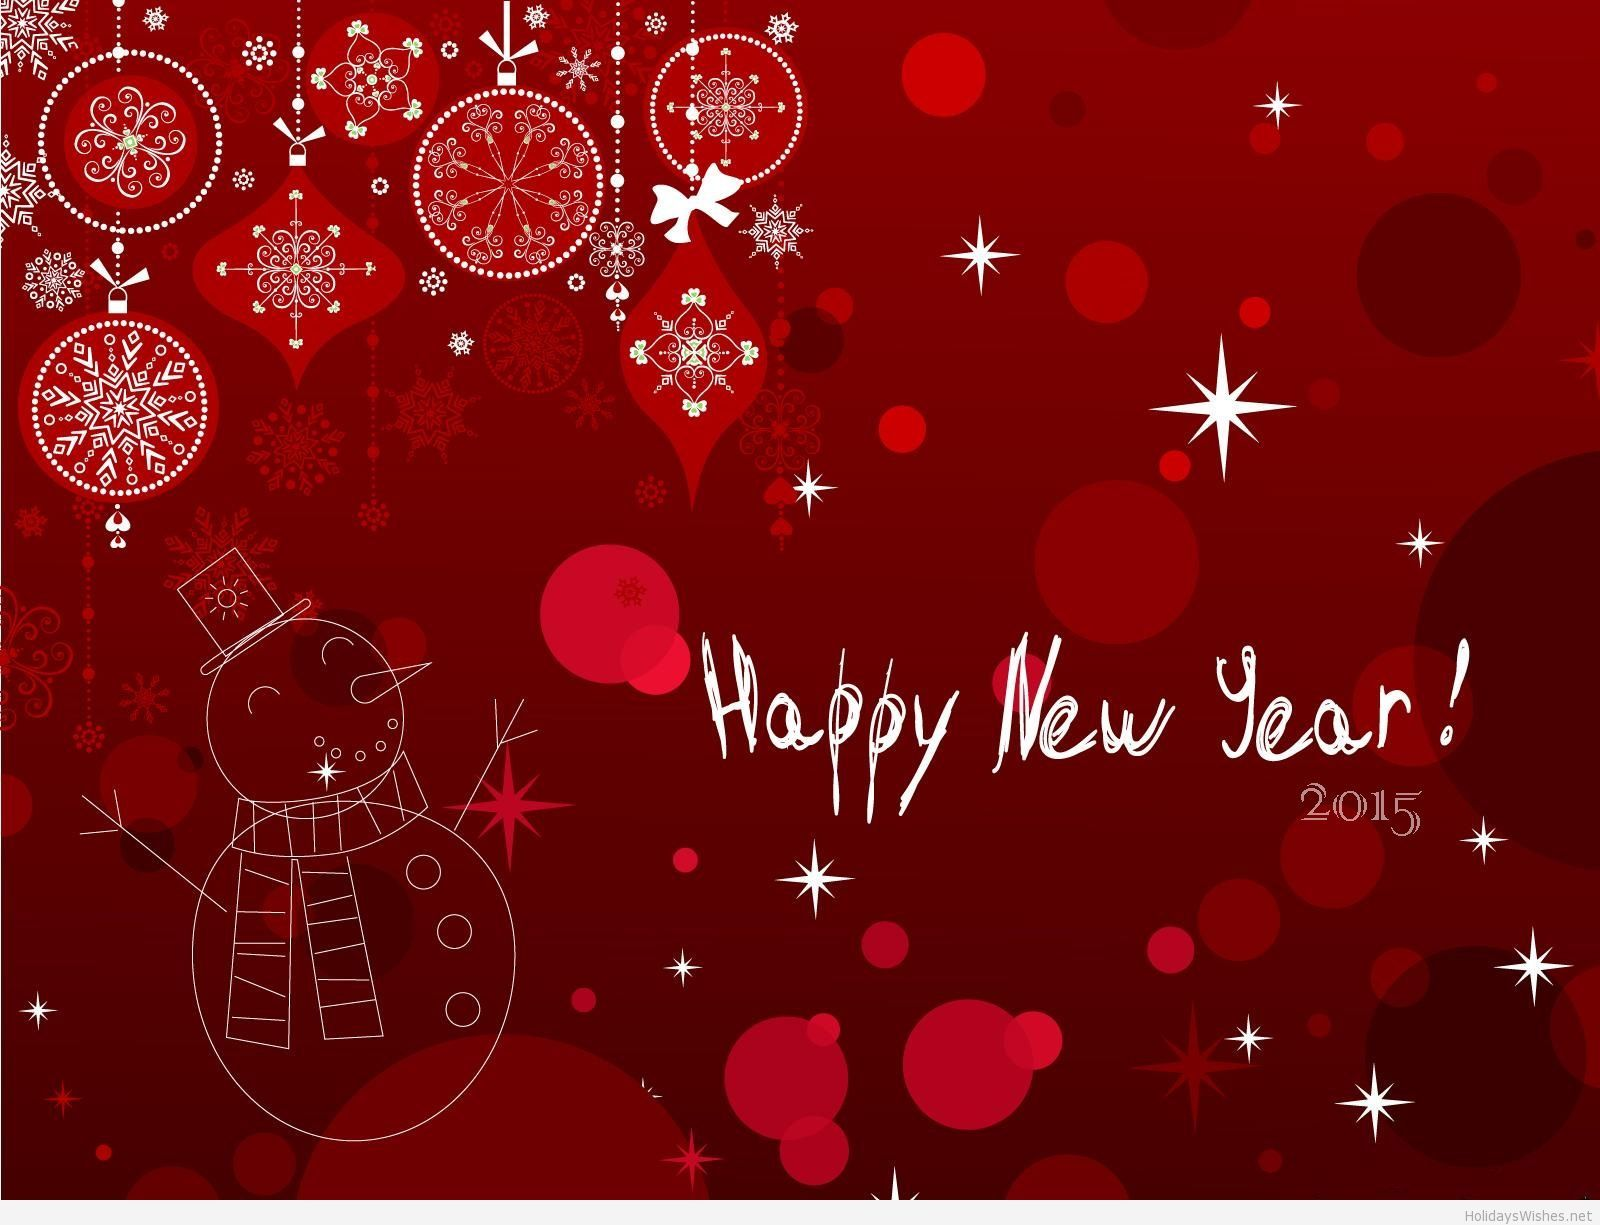 wish you a very happy new year 2015 hd wallpapers images picture photos pics http